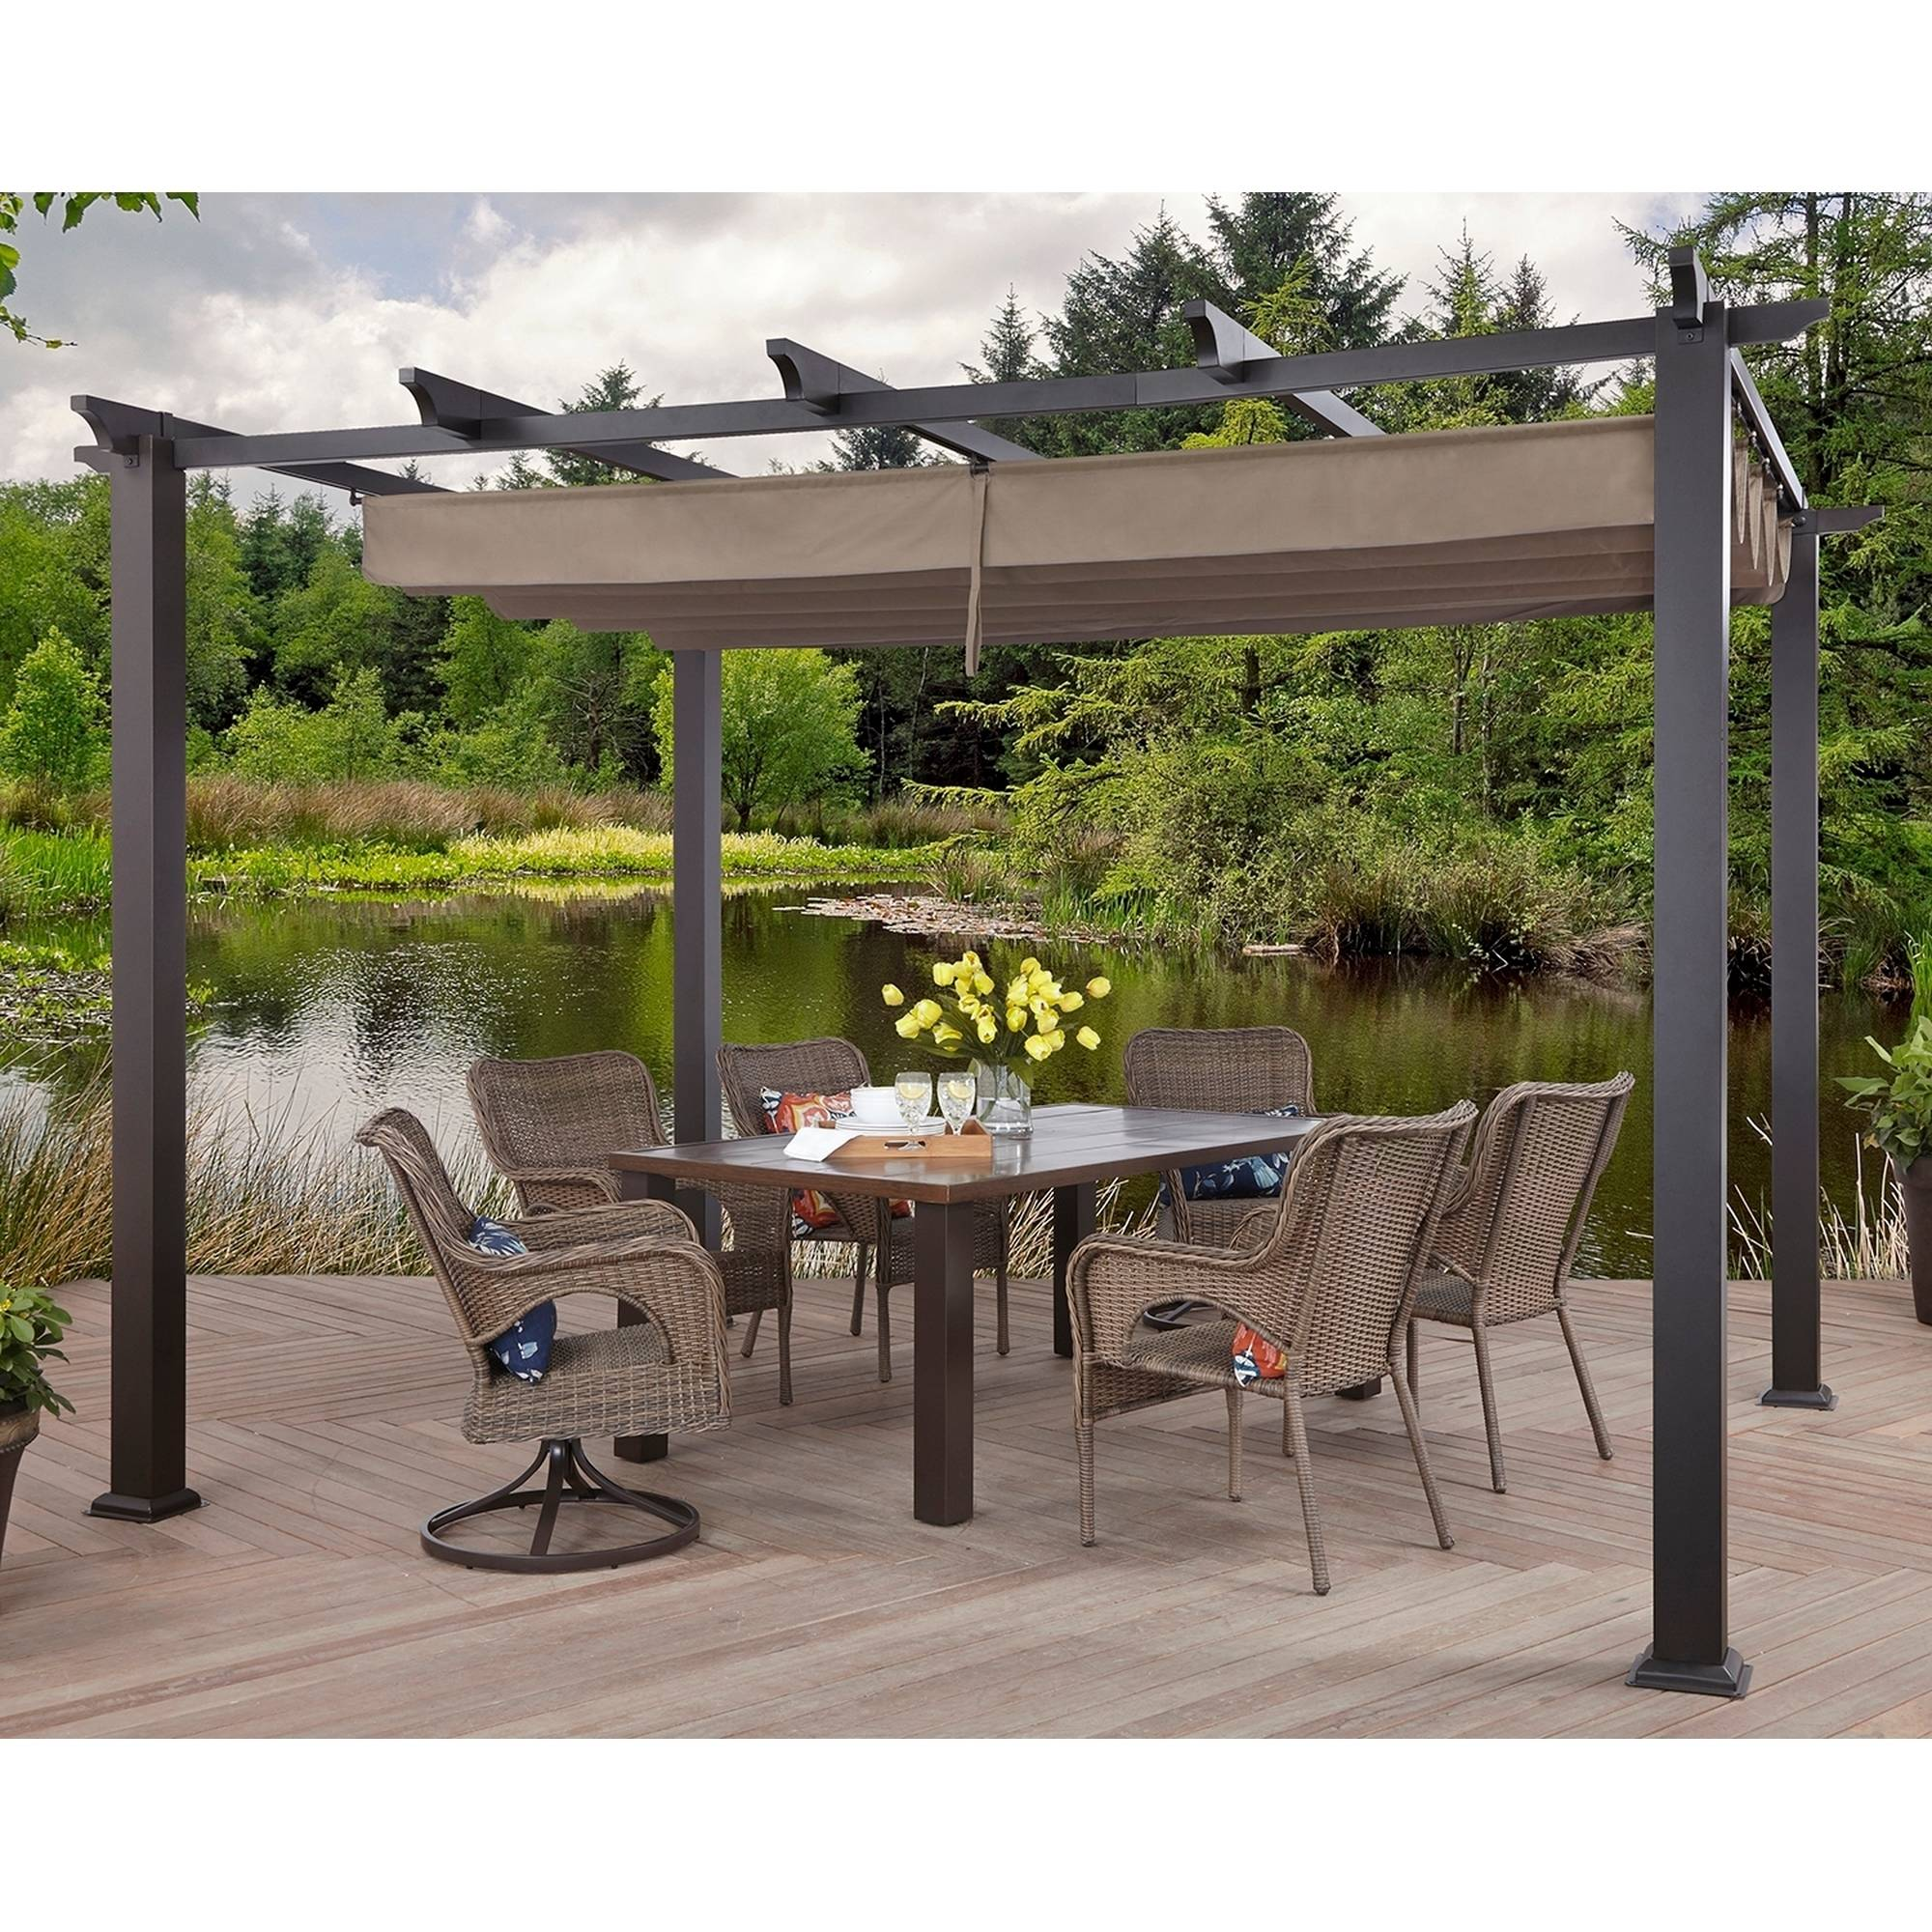 Better Homes and Gardens Meritmoor Aluminum/Steel Pergola with Single-Finish 10'x12'